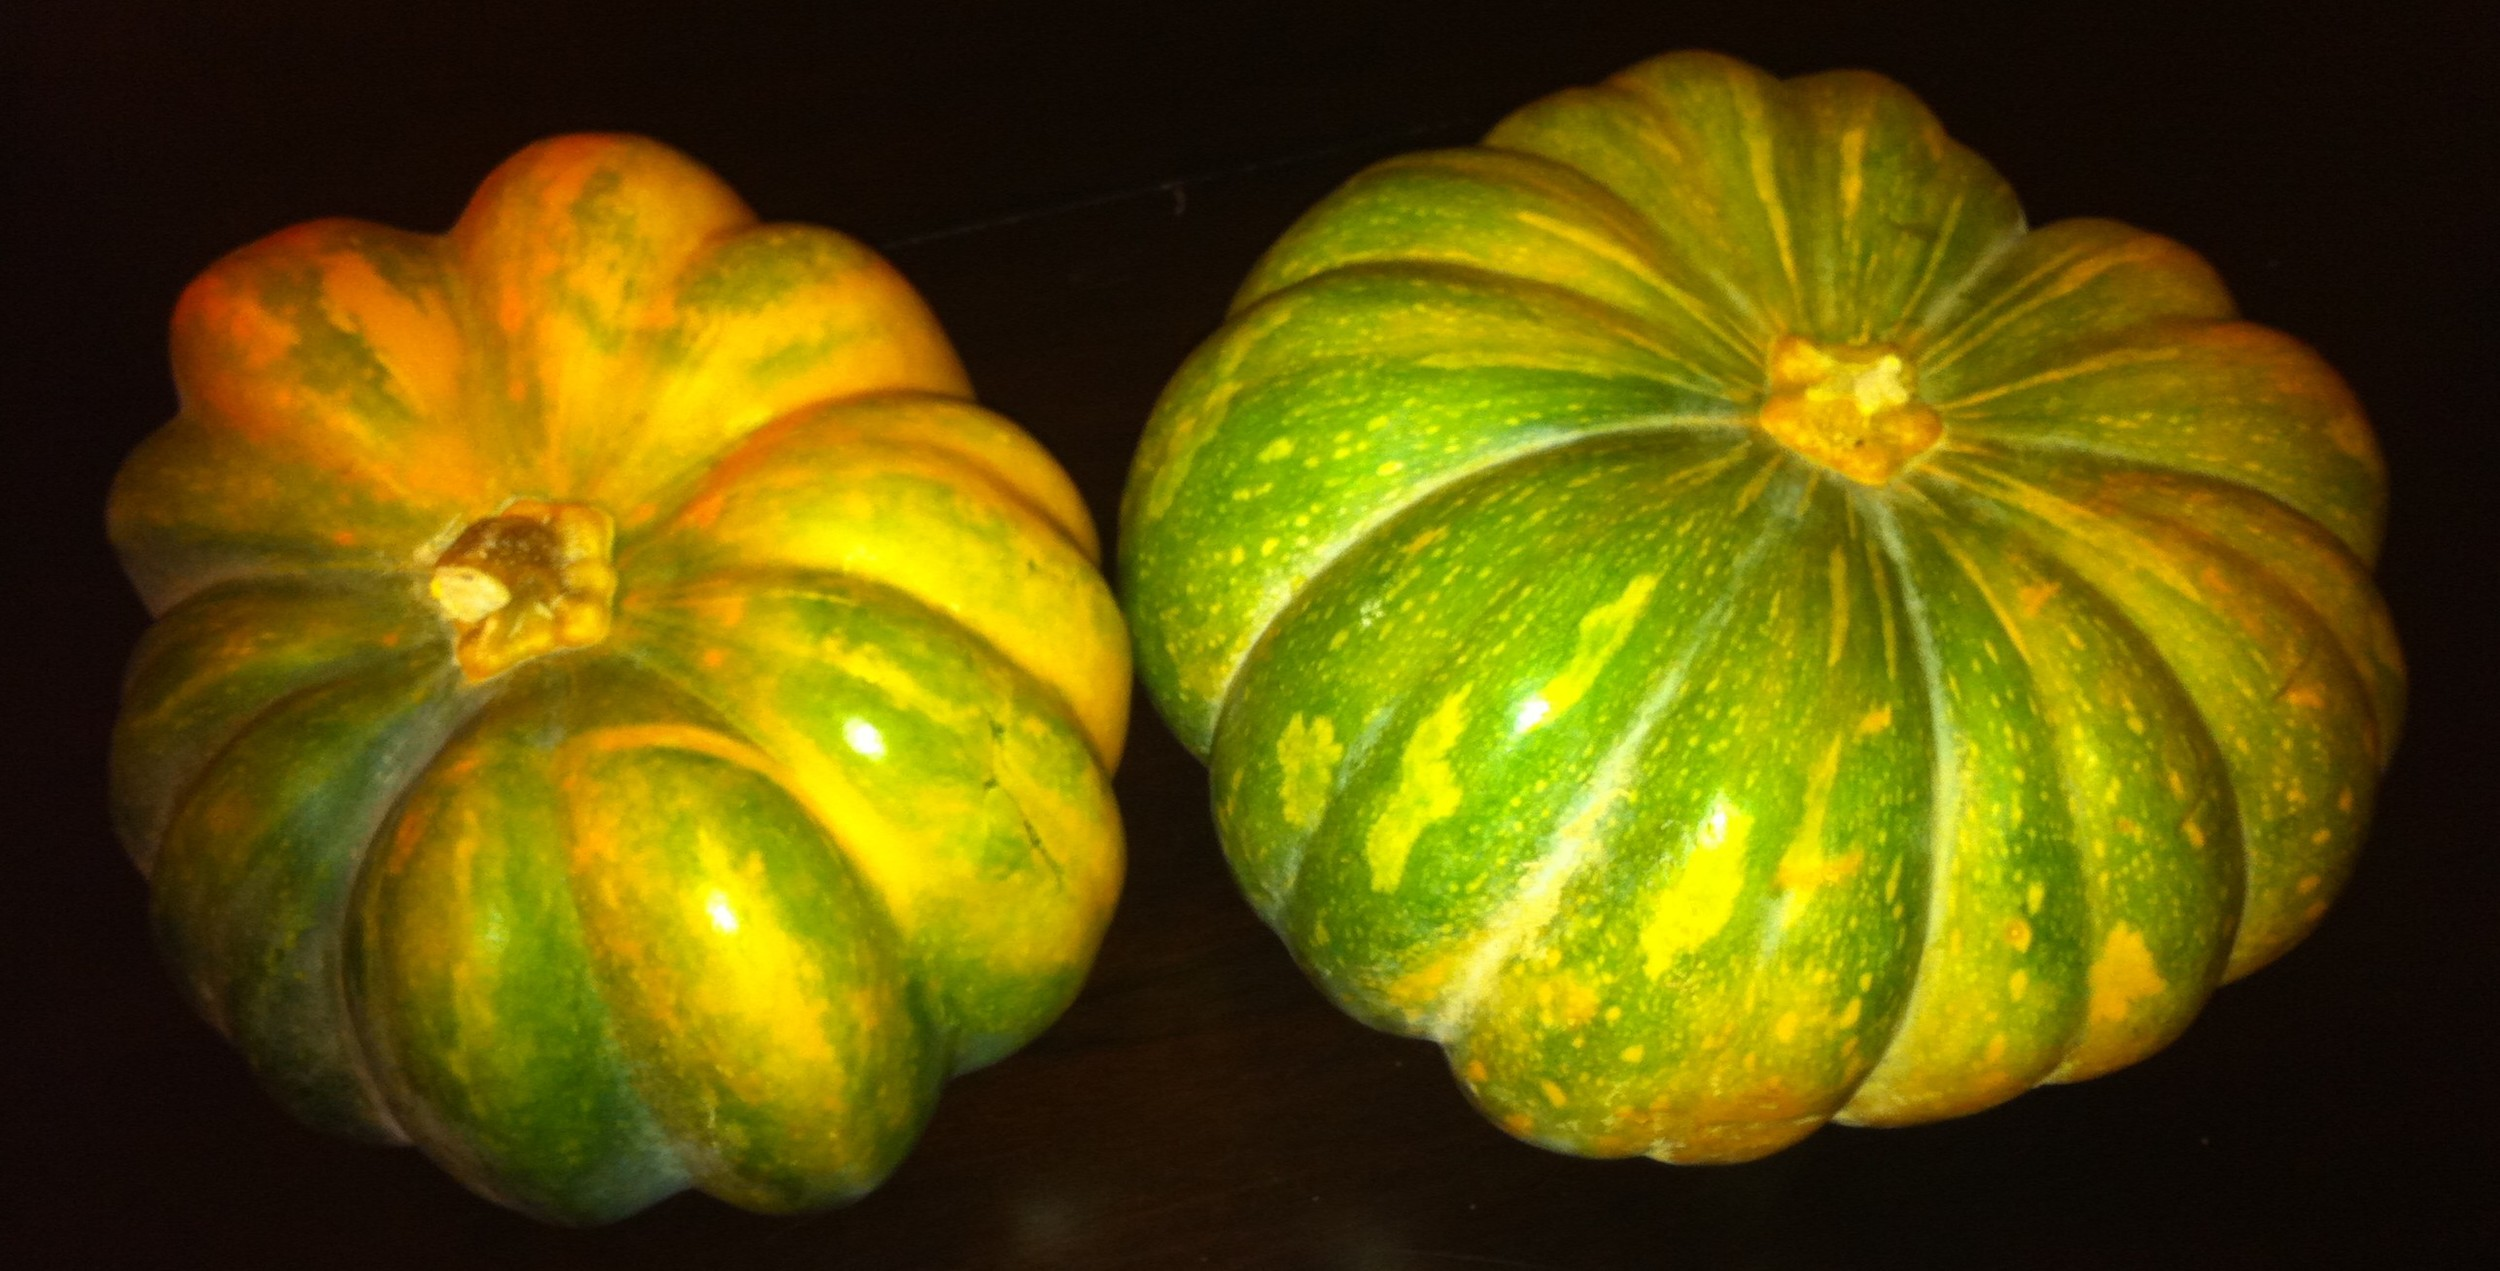 "These fairytale pumpkins are gorgeous and according to the sign: ""Great for Cooking!"".  I bet they'd make a beautiful bowl for a vegan soup to be cooked in!"